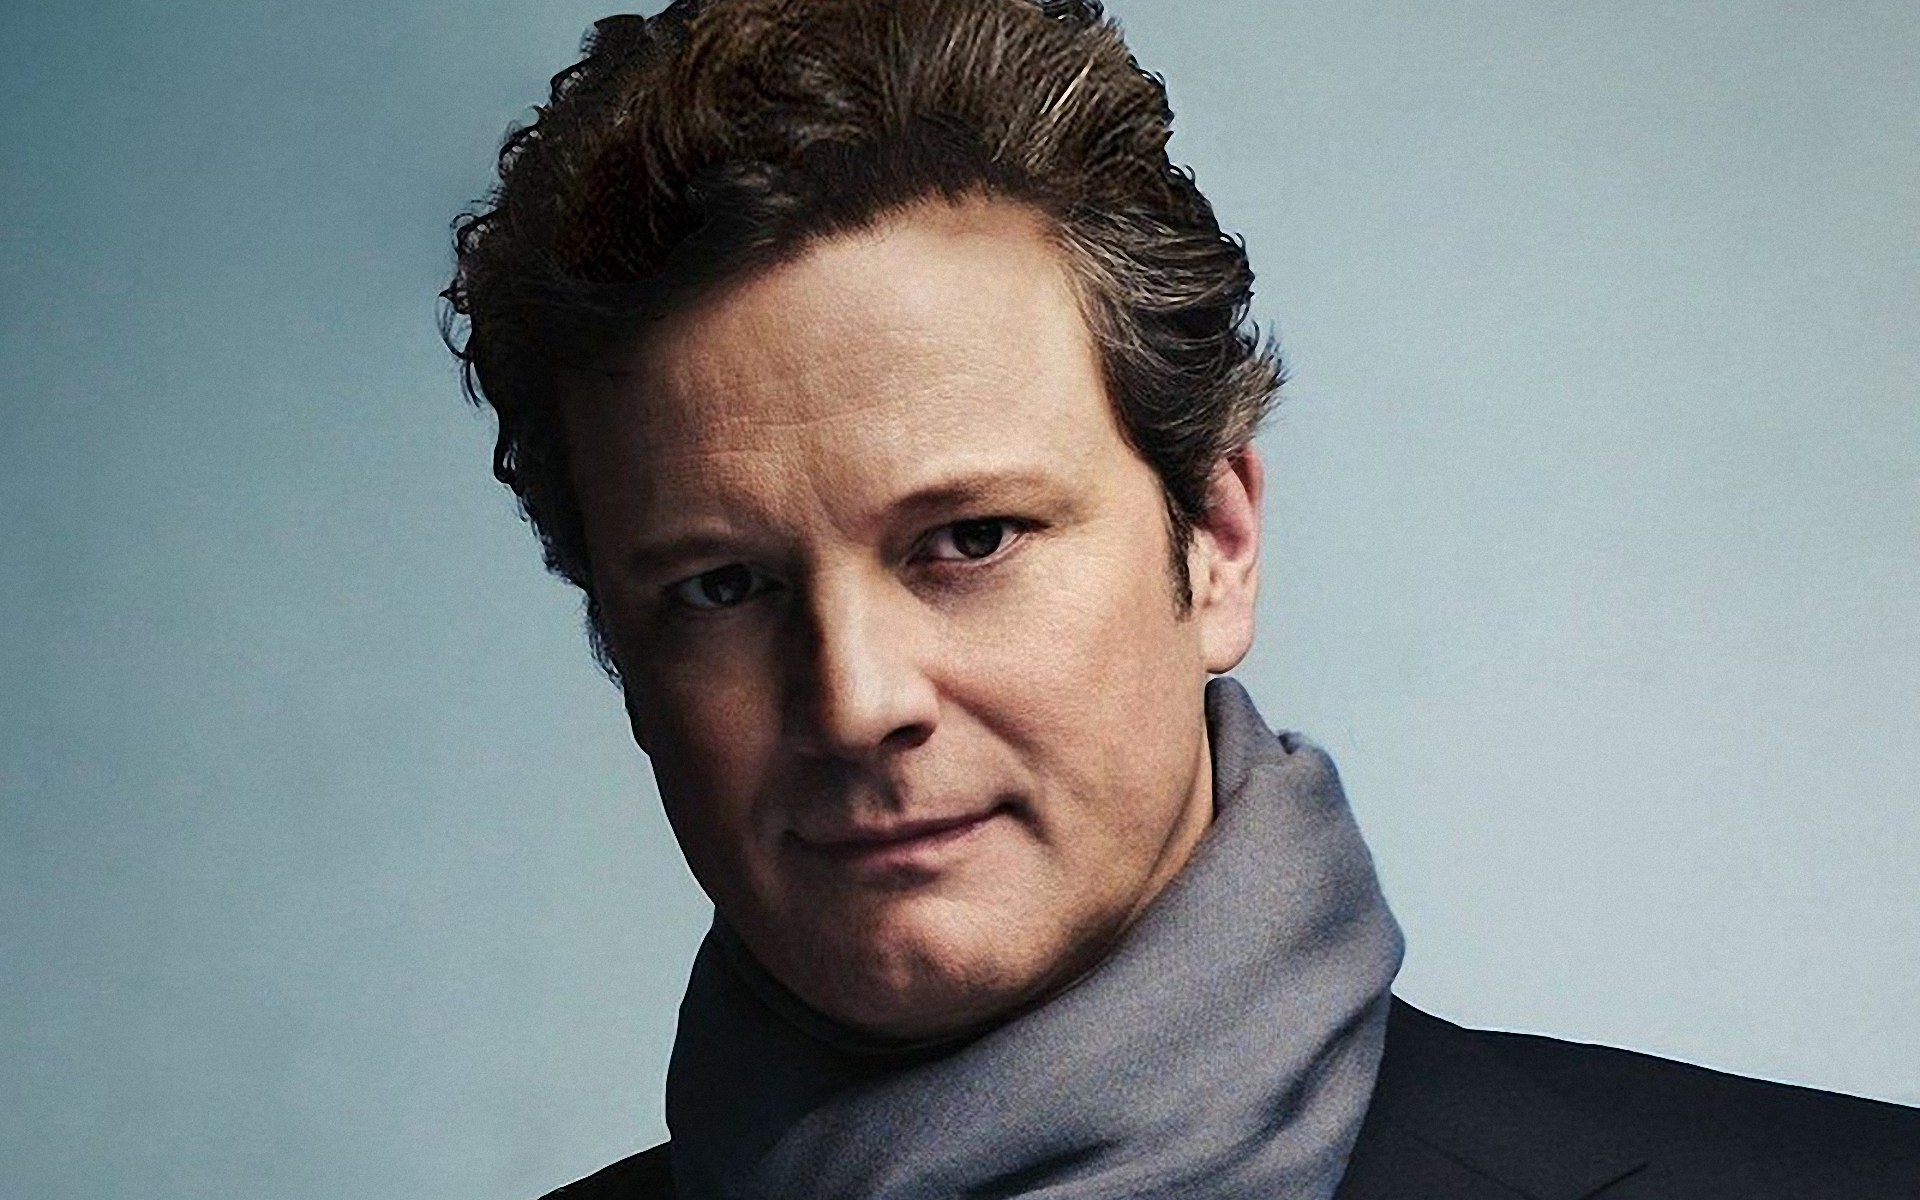 Colin Firth Handsome 1920×1200 Wallpapers, 1920×1200 Wallpapers …